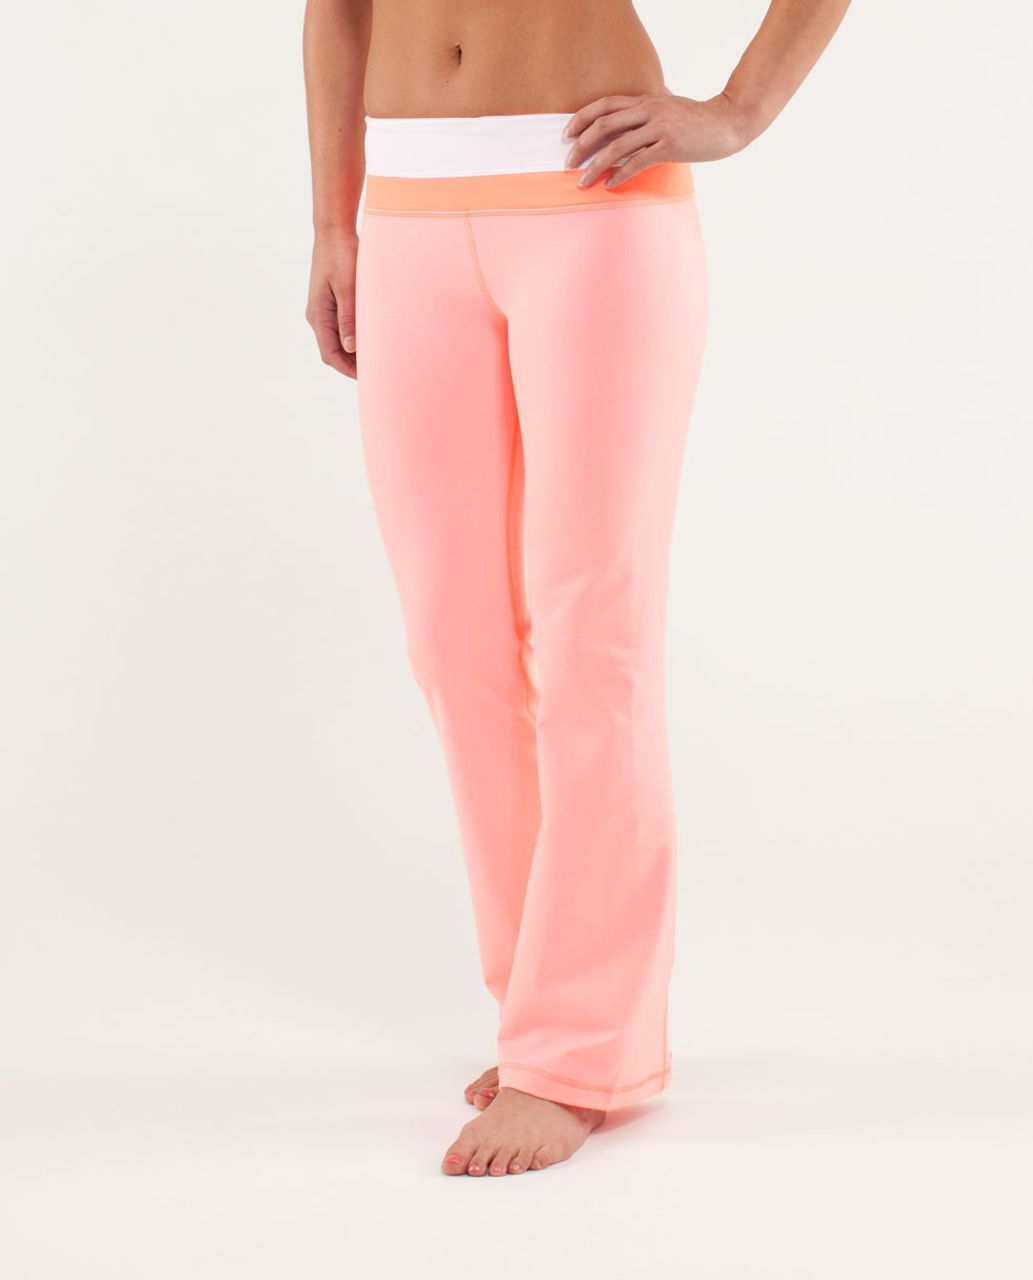 Lululemon Groove Pant *New (Tall) - Bleached Coral / White / Pop Orange